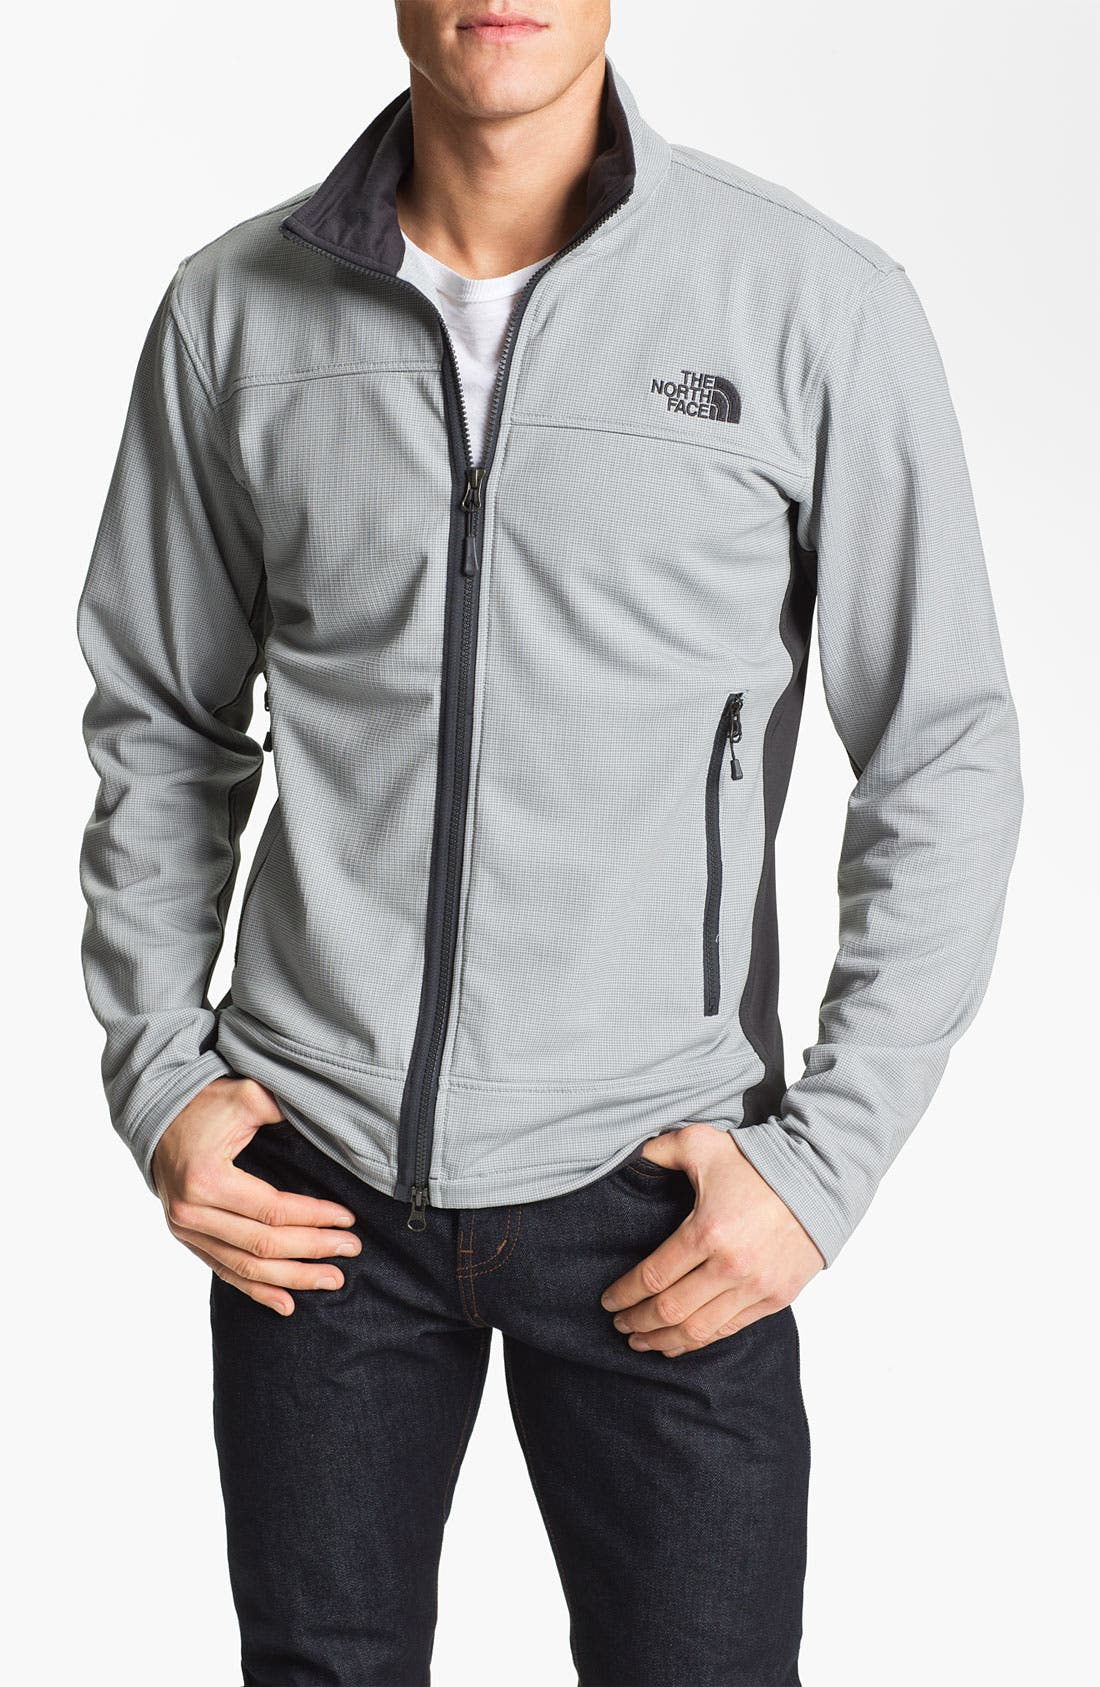 Main Image - The North Face 'Honed' Jacket